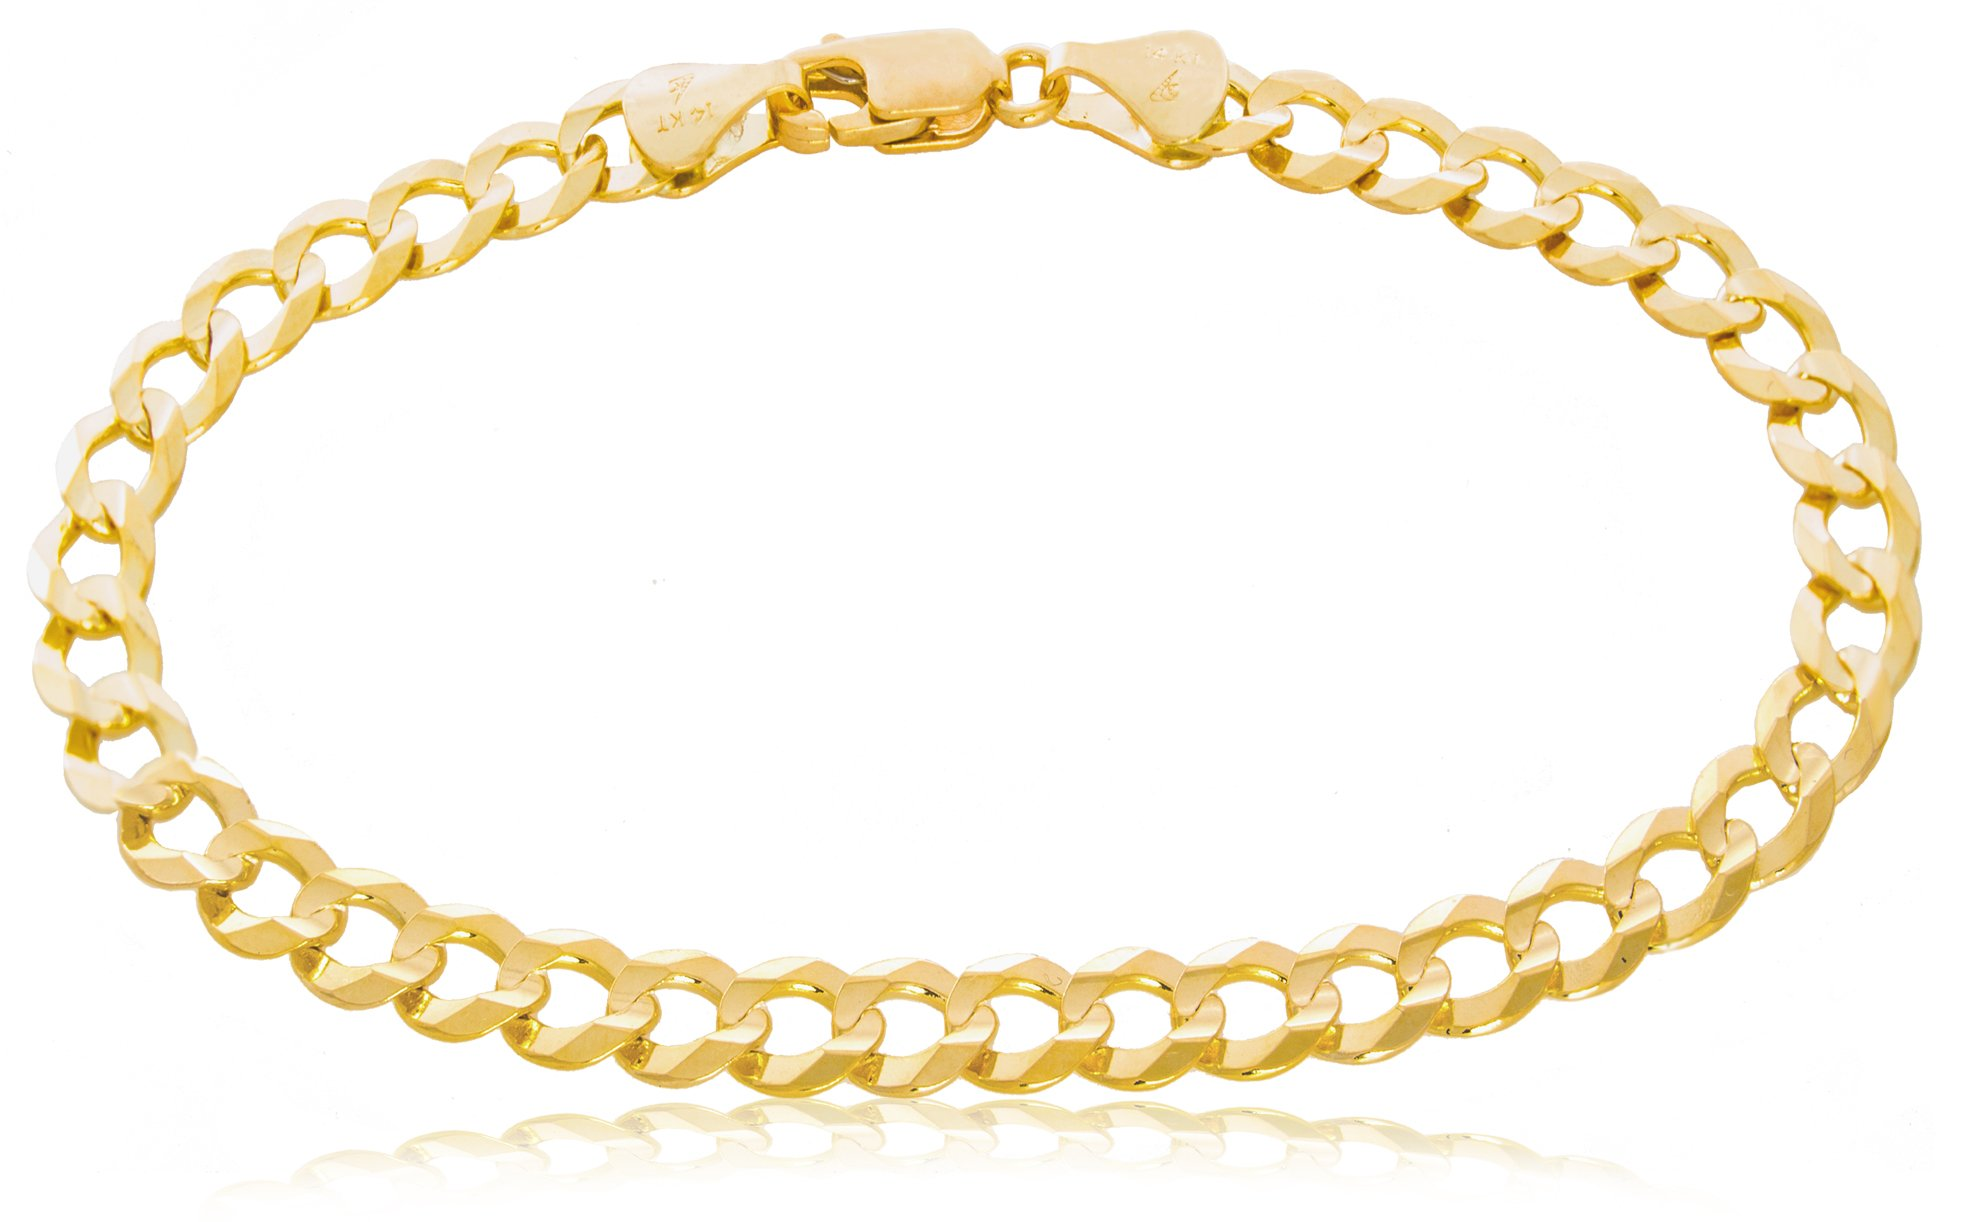 Solid Gold Light Curb Chain Bracelet 14K Yellow Gold 5.7mm Wide by 7-1/2'' Long | 6.9g